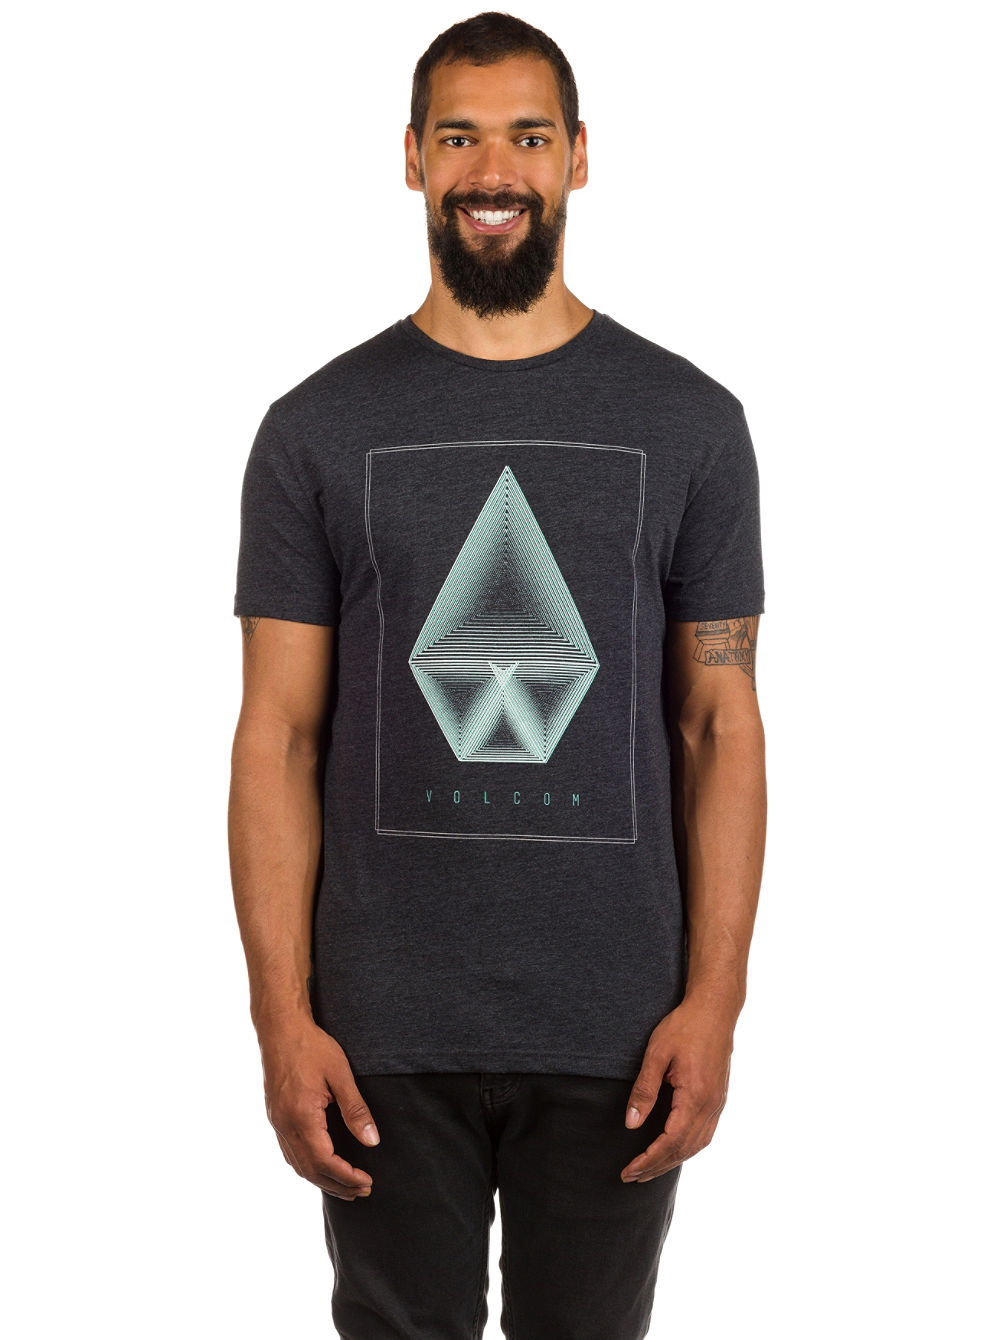 Concentric Hth T-Shirt